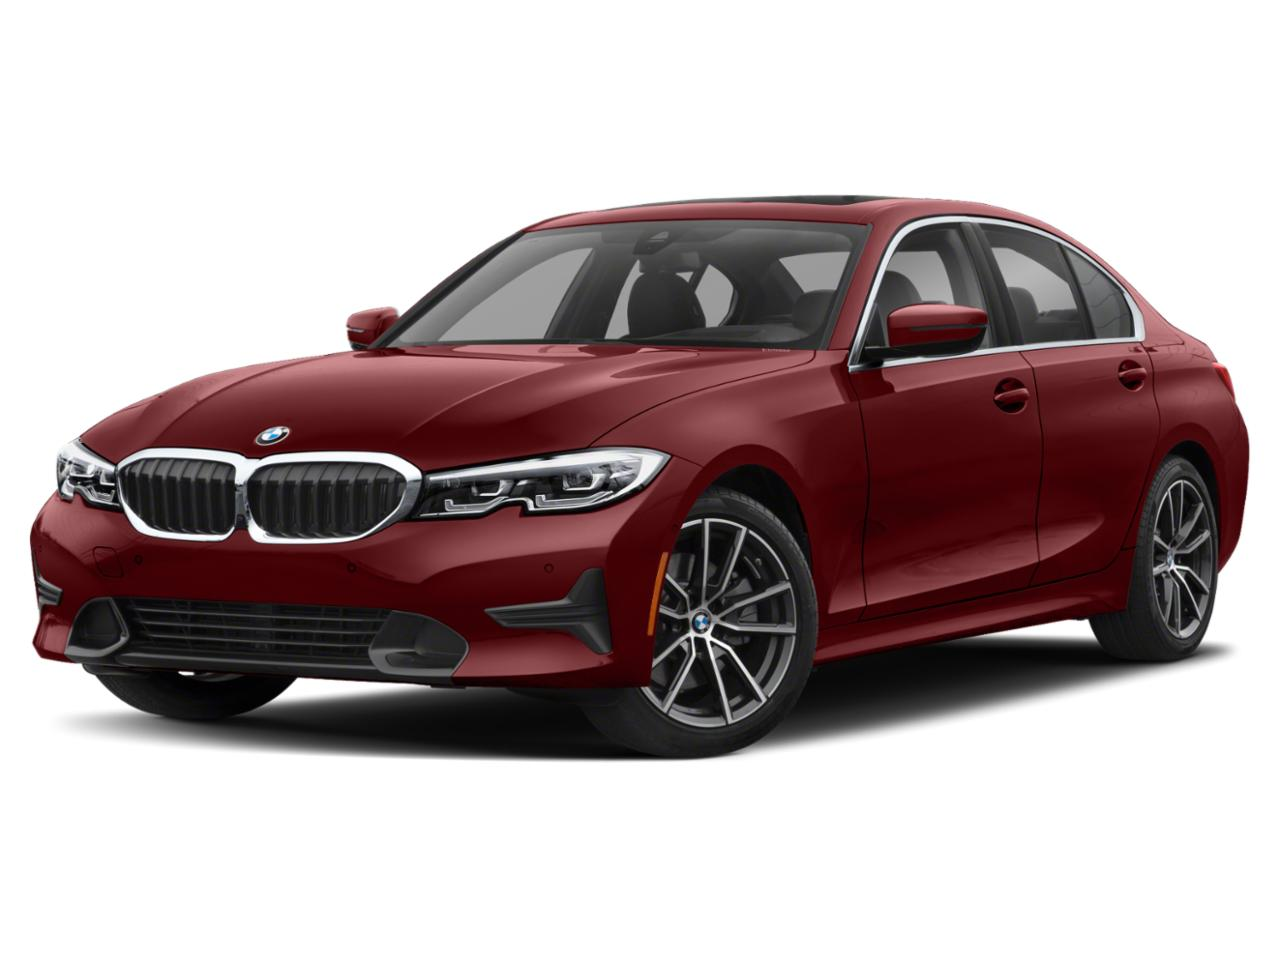 2019 BMW 330i Vehicle Photo in TEMPLE, TX 76504-3447